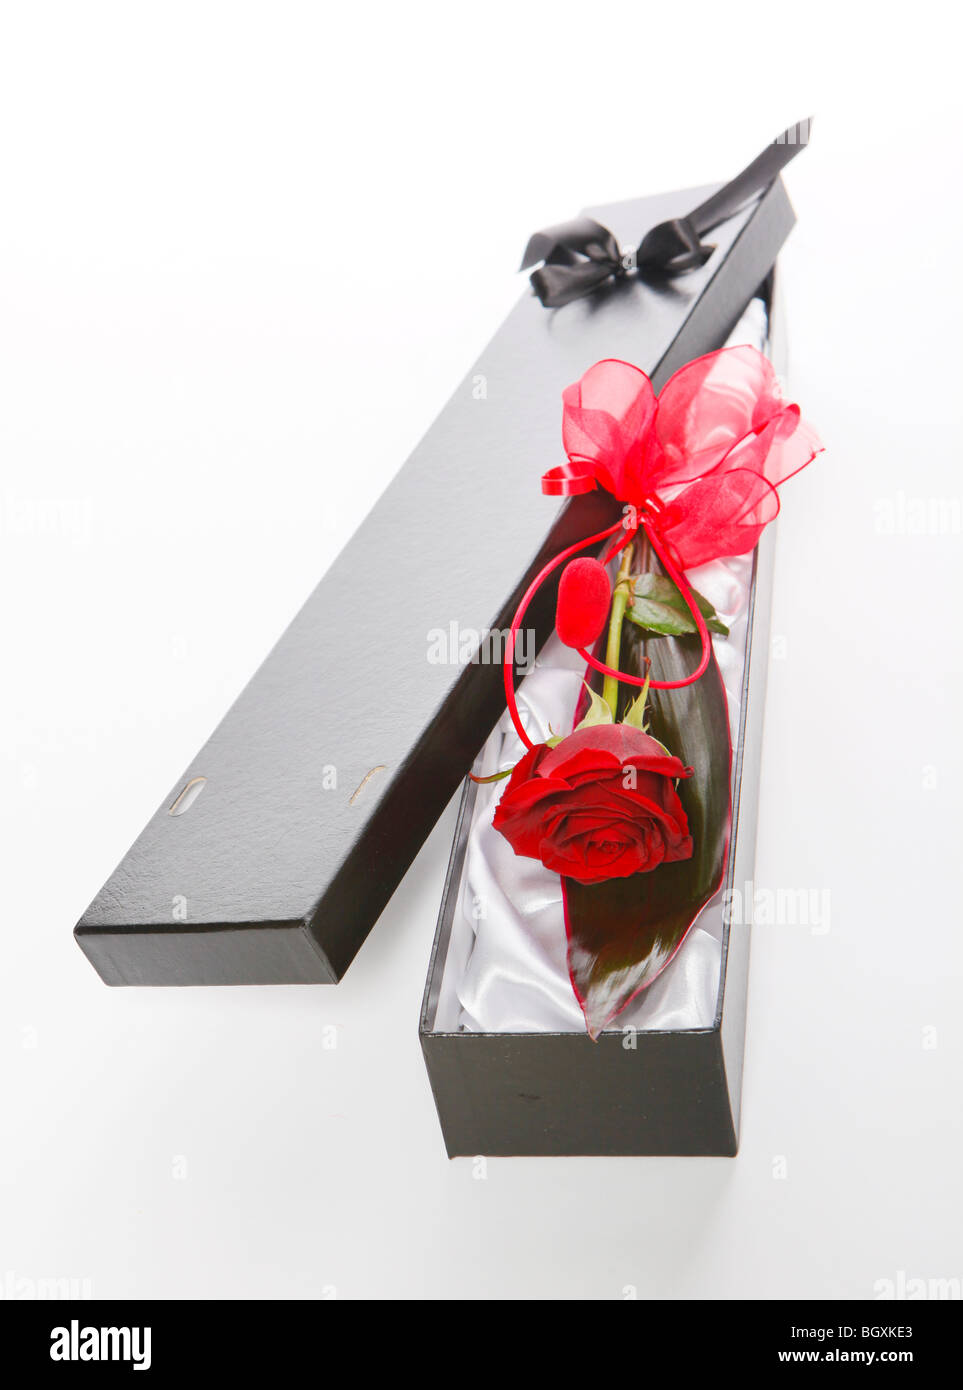 a valentines day gift of a single red rose in a black gift box